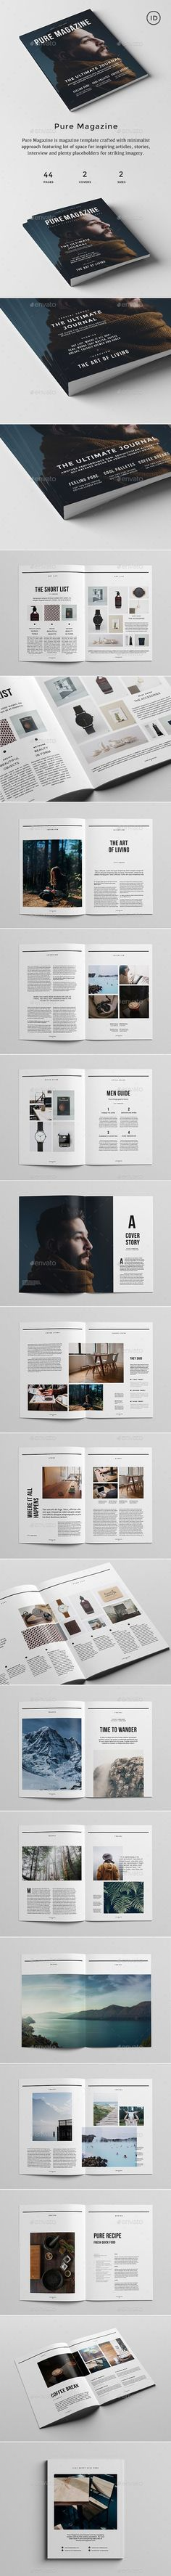 Pure Magazine is 44 pages magazine template with two cover options. It is crafted with minimalist approach and features a lot of space for inspiring articles, stories, interview and plenty placeholders for striking imagery.